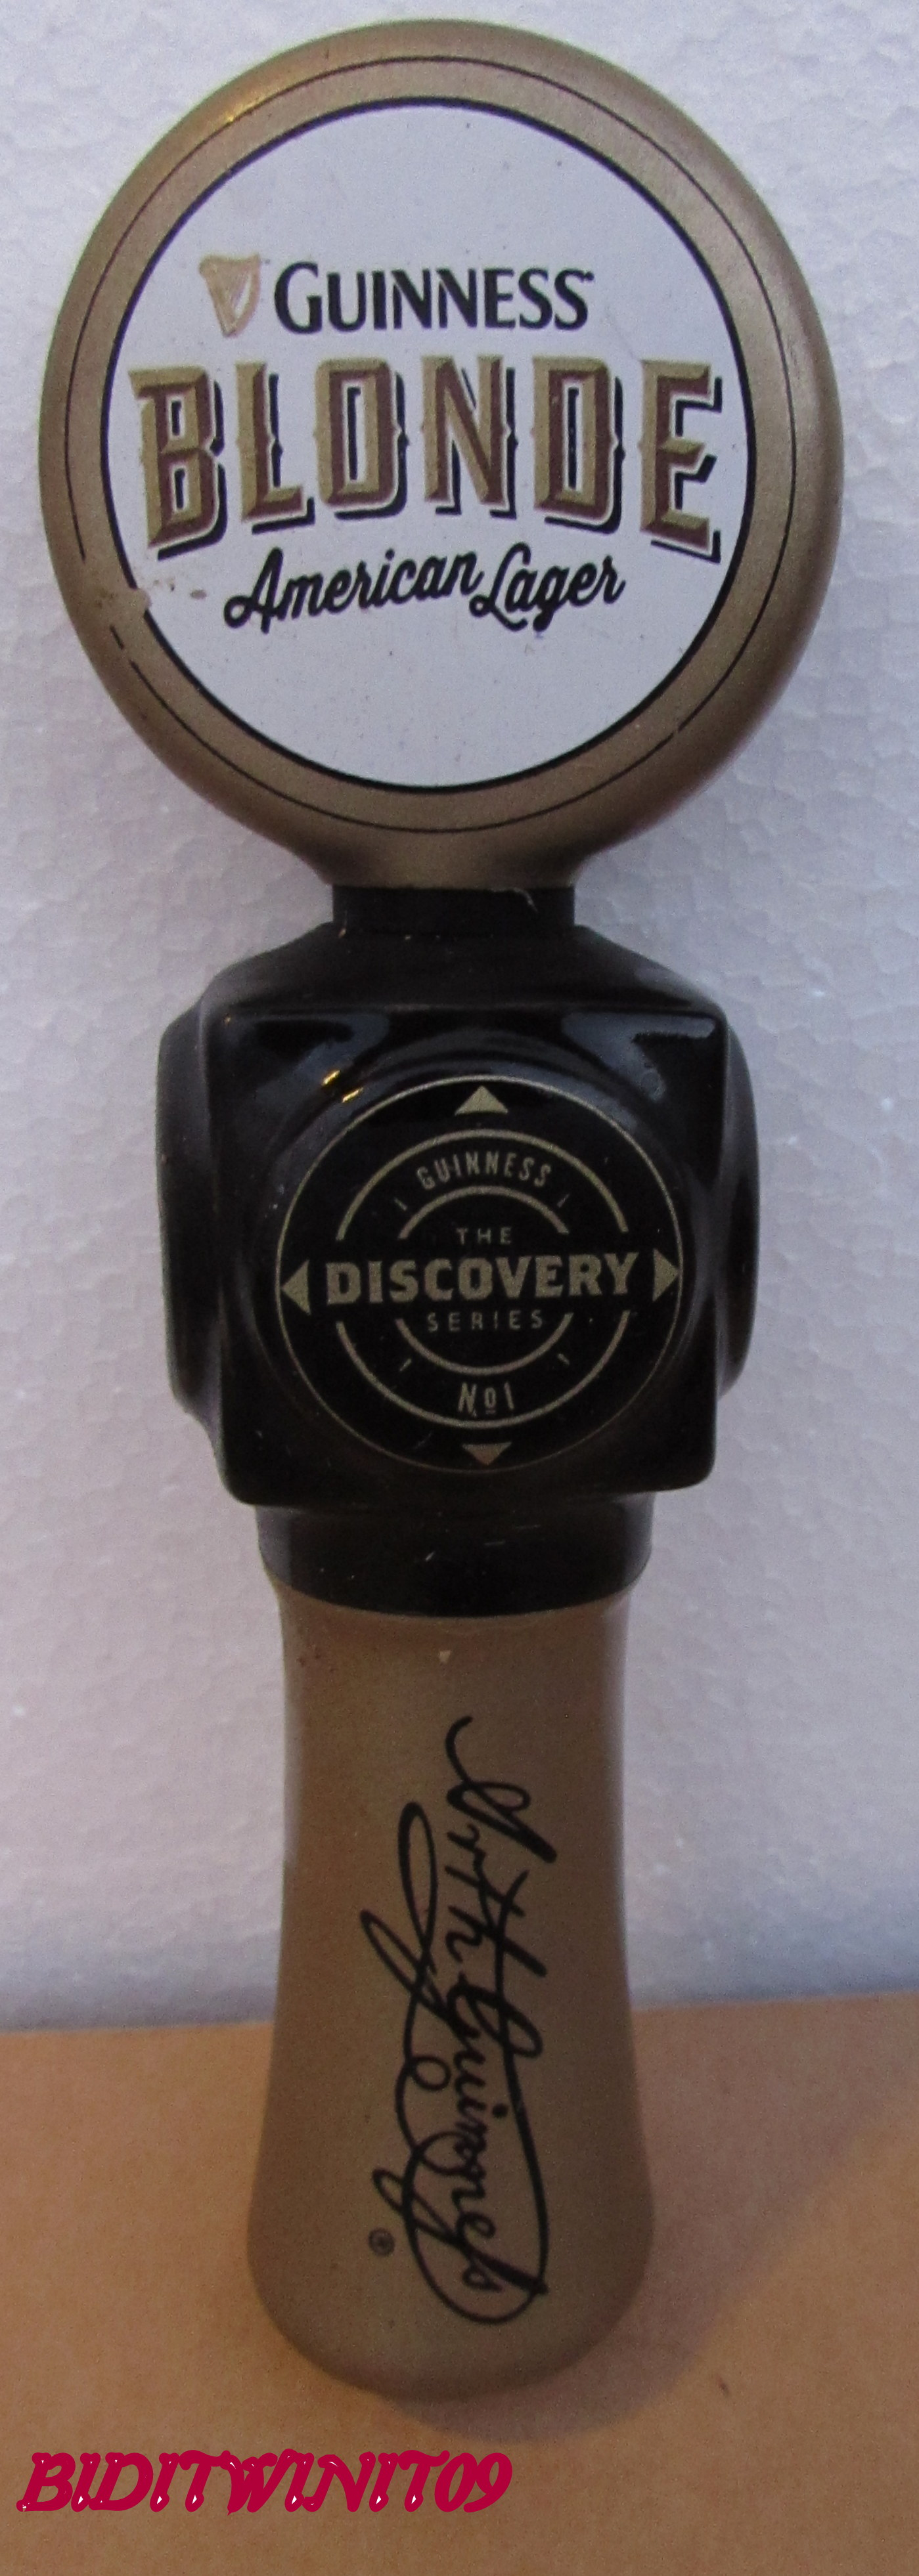 BEER TAP HANDLE GUINNESS BLONDE DISCOVERY E+